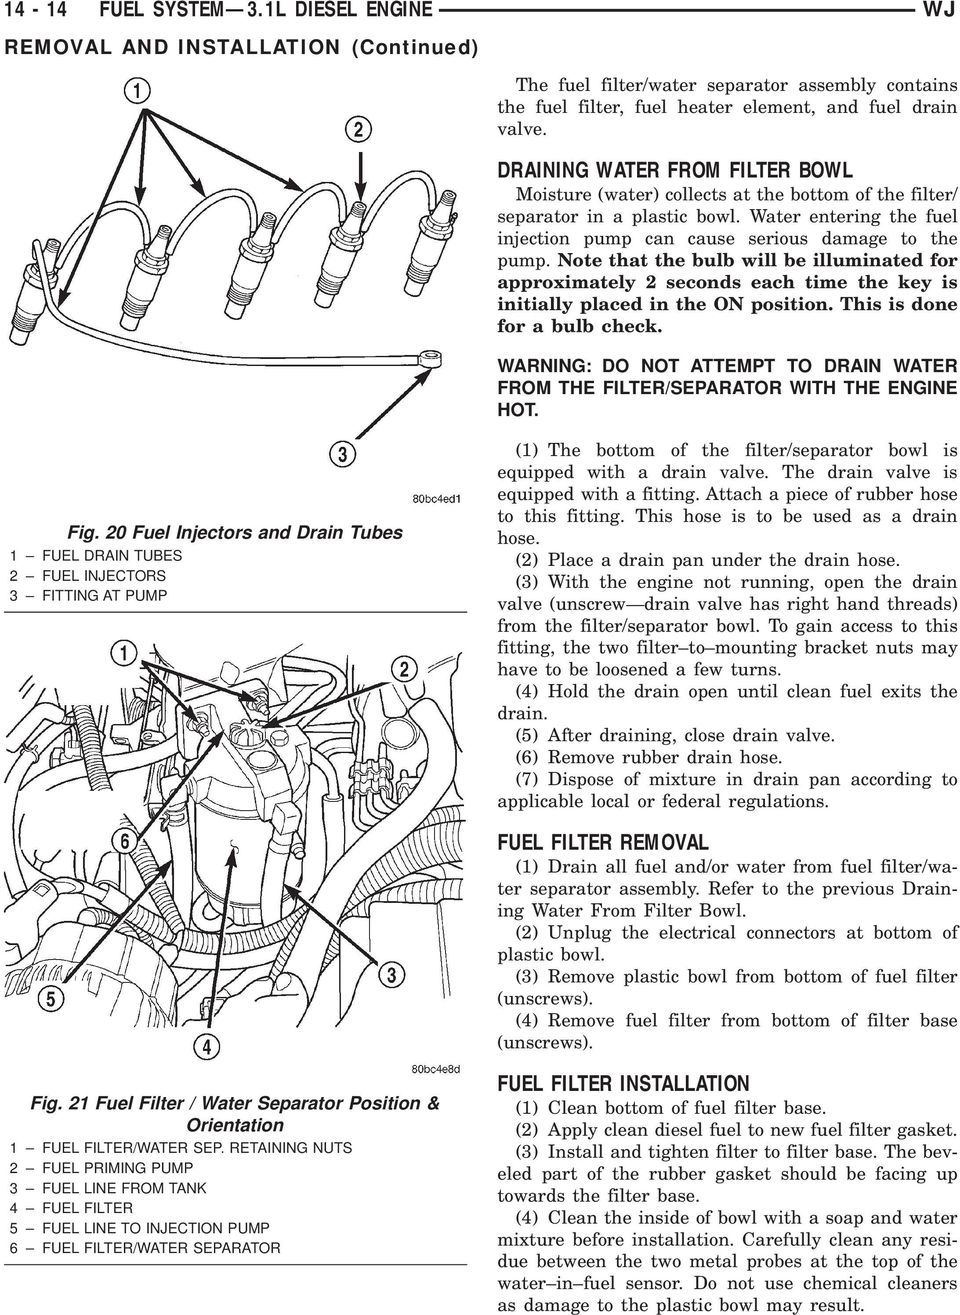 FUEL SYSTEM 3.1L SEL ENGINE - PDF on 7.3 fuel bowl adapter, 7.3 fuel bowl rebuild kit, 7.3 fuel bowl diagram, 7.3 fuel bowl sensor,